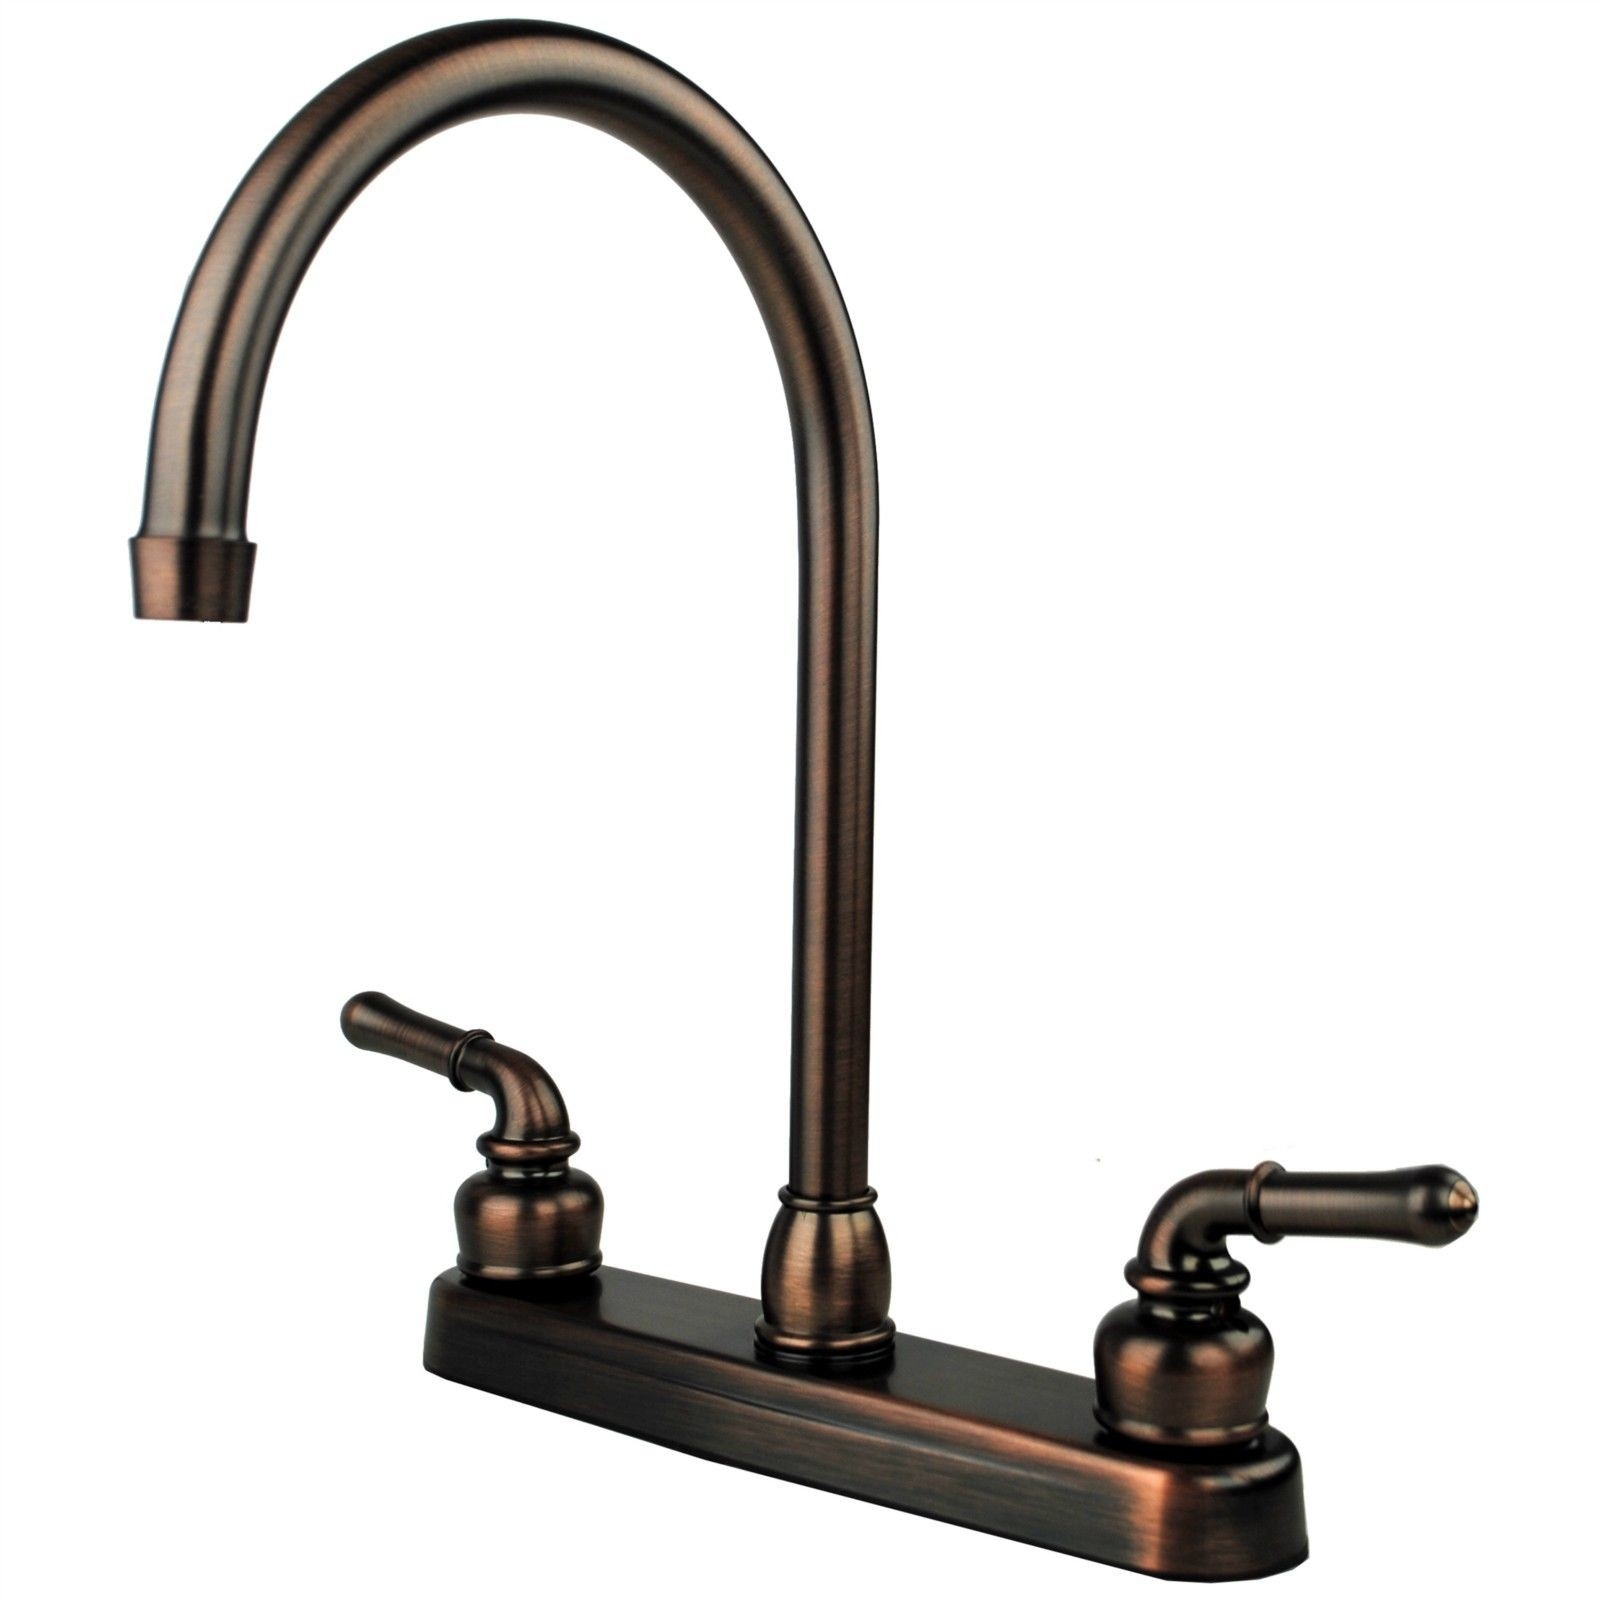 Ideas, rv kitchen sinks and faucets rv kitchen sinks and faucets ultra faucets rv mobile home trailer kitchen sink faucet 1600 x 1600  .